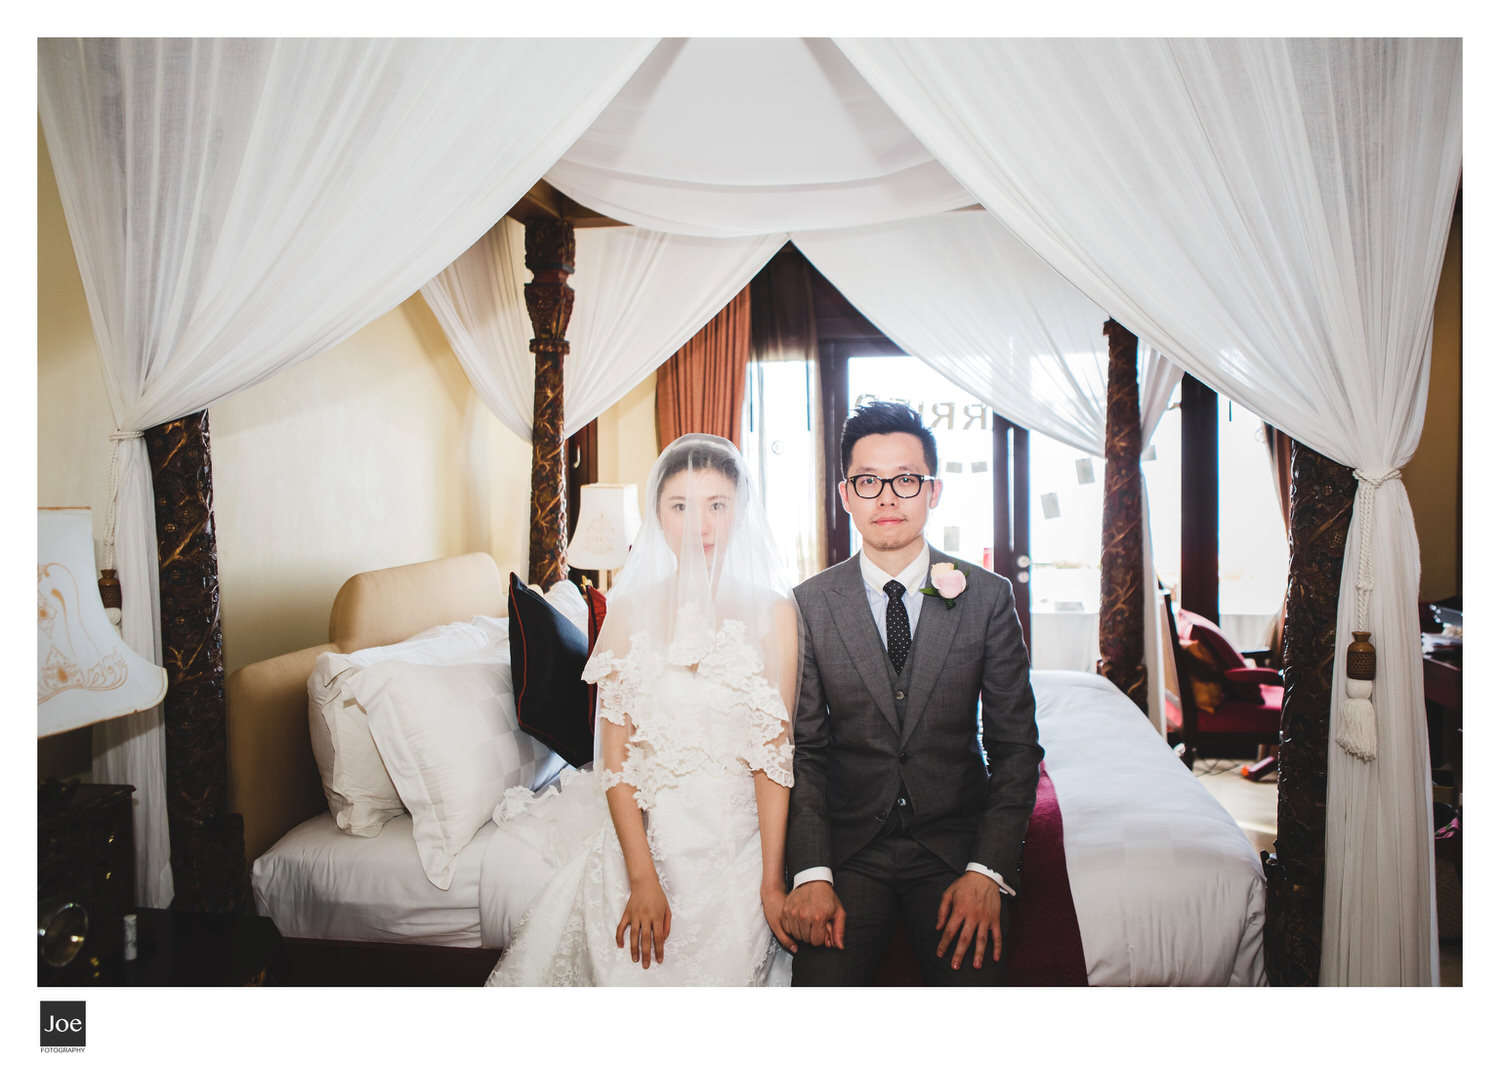 joe-fotography-bali-wedding-ayana-resort-janie-sean-44.jpg